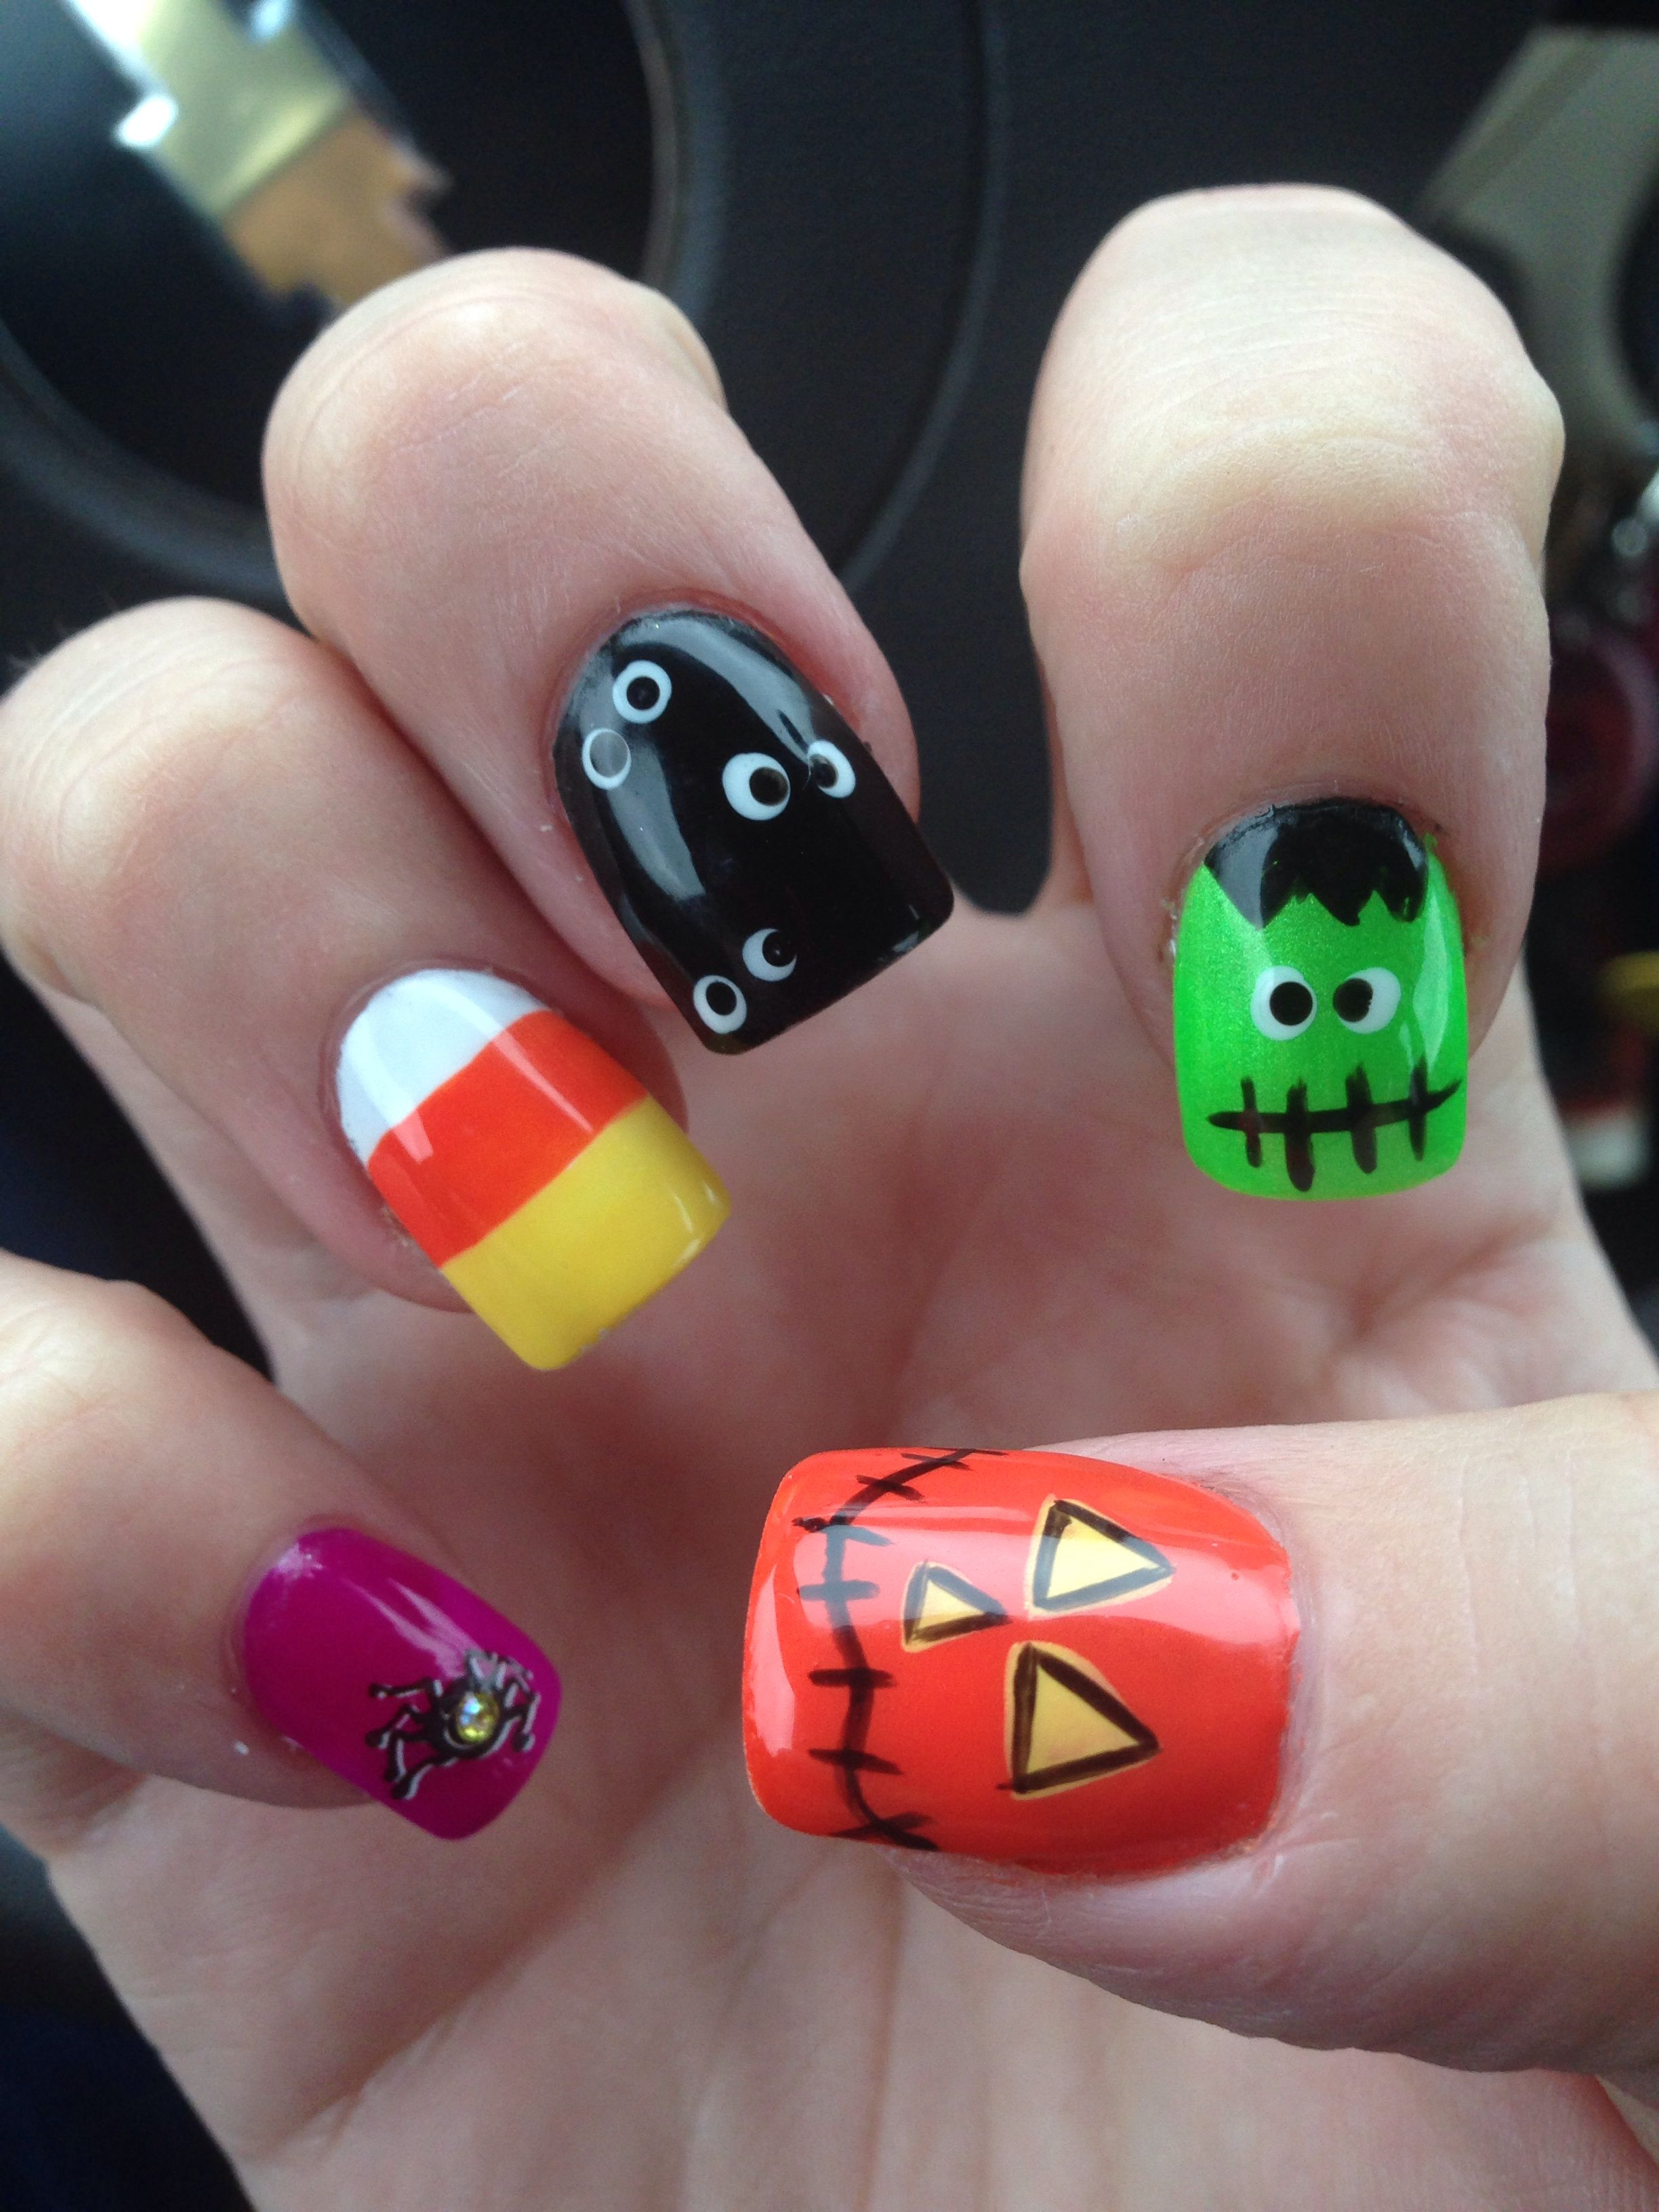 50 Cool Halloween Nail Art Ideas Cuded Cute Halloween Nails Halloween Nail Designs Halloween Nail Art